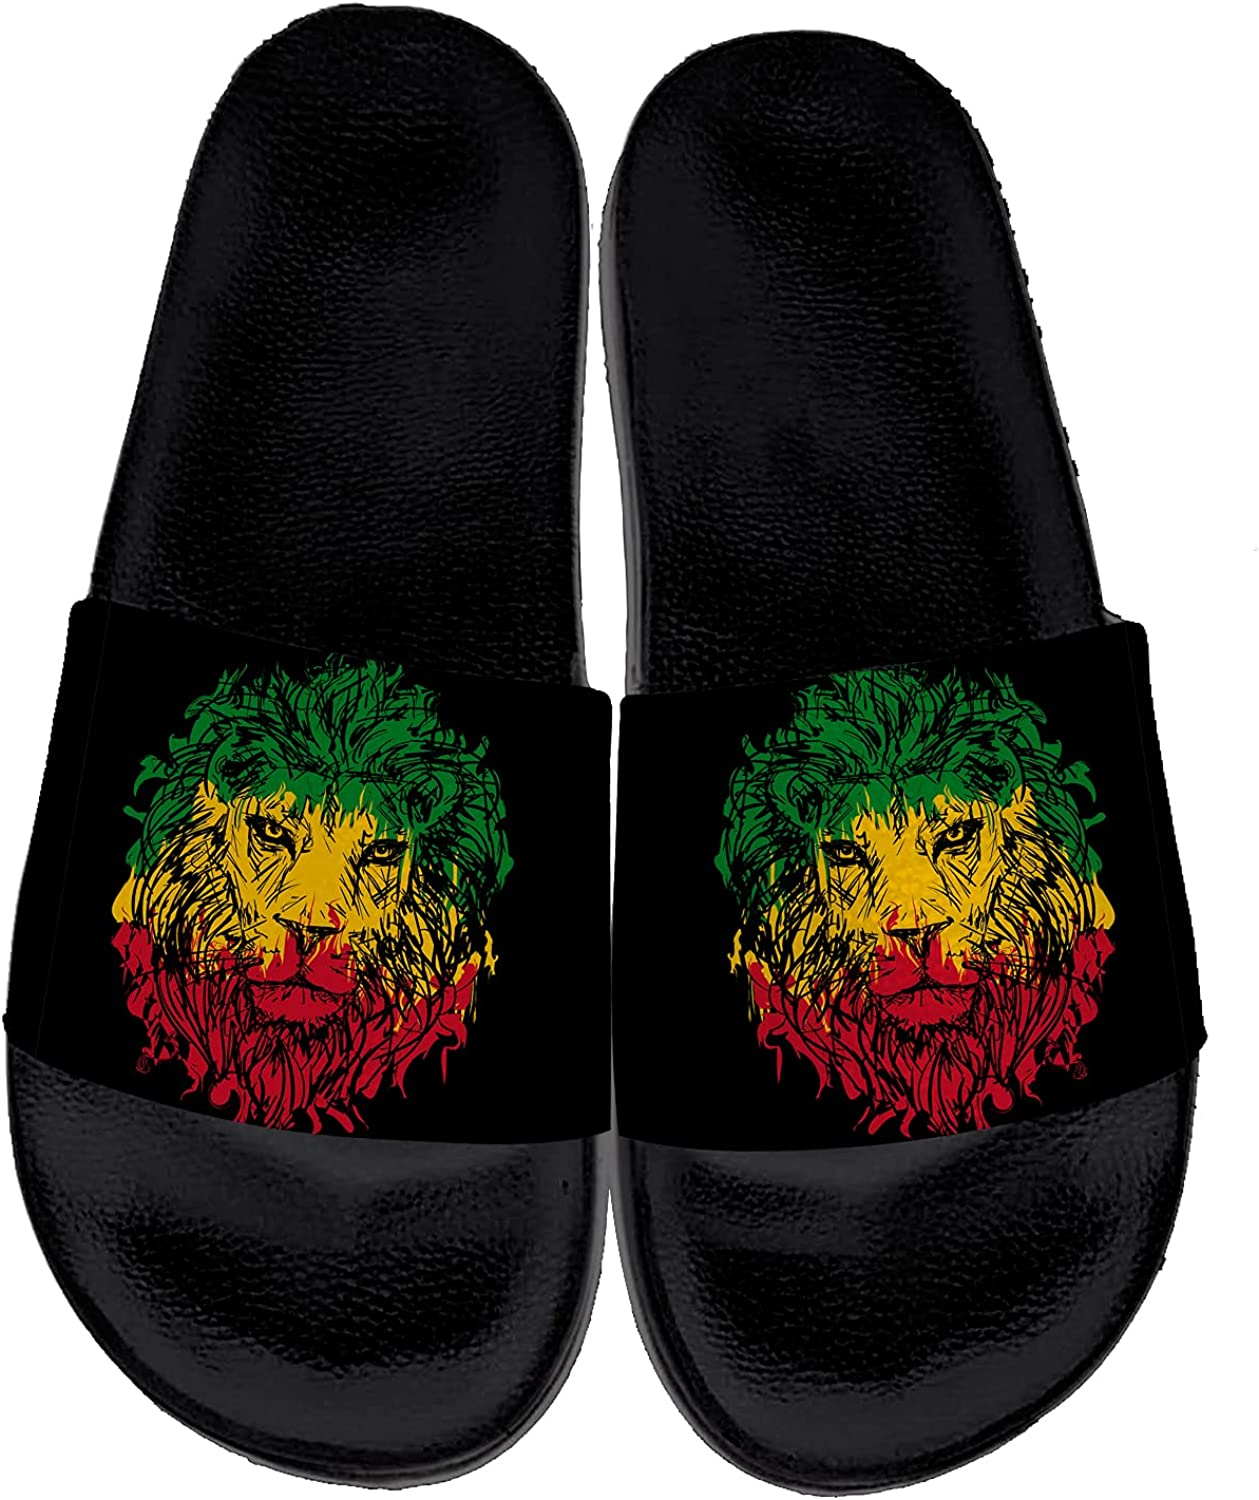 Rasta Lion Sandals Womens Mens Slide Sandals Casual Sport Indoor Outdoor Bath Beach Shower Casual House Slippers Shoes Gifts for Men Women